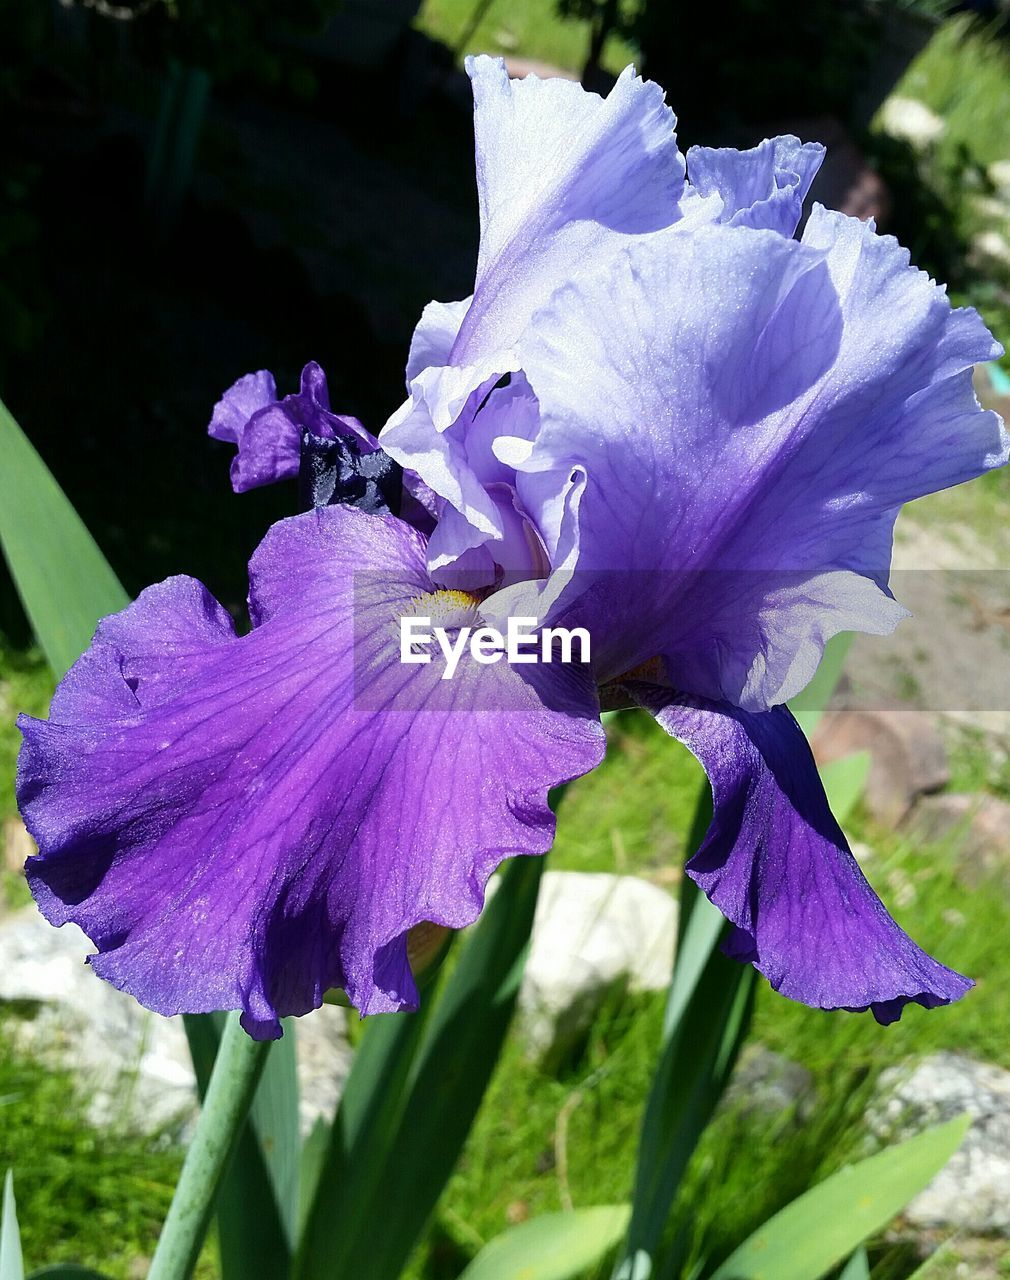 flower, fragility, petal, beauty in nature, flower head, nature, purple, growth, day, no people, freshness, outdoors, plant, close-up, focus on foreground, blooming, iris - plant, petunia